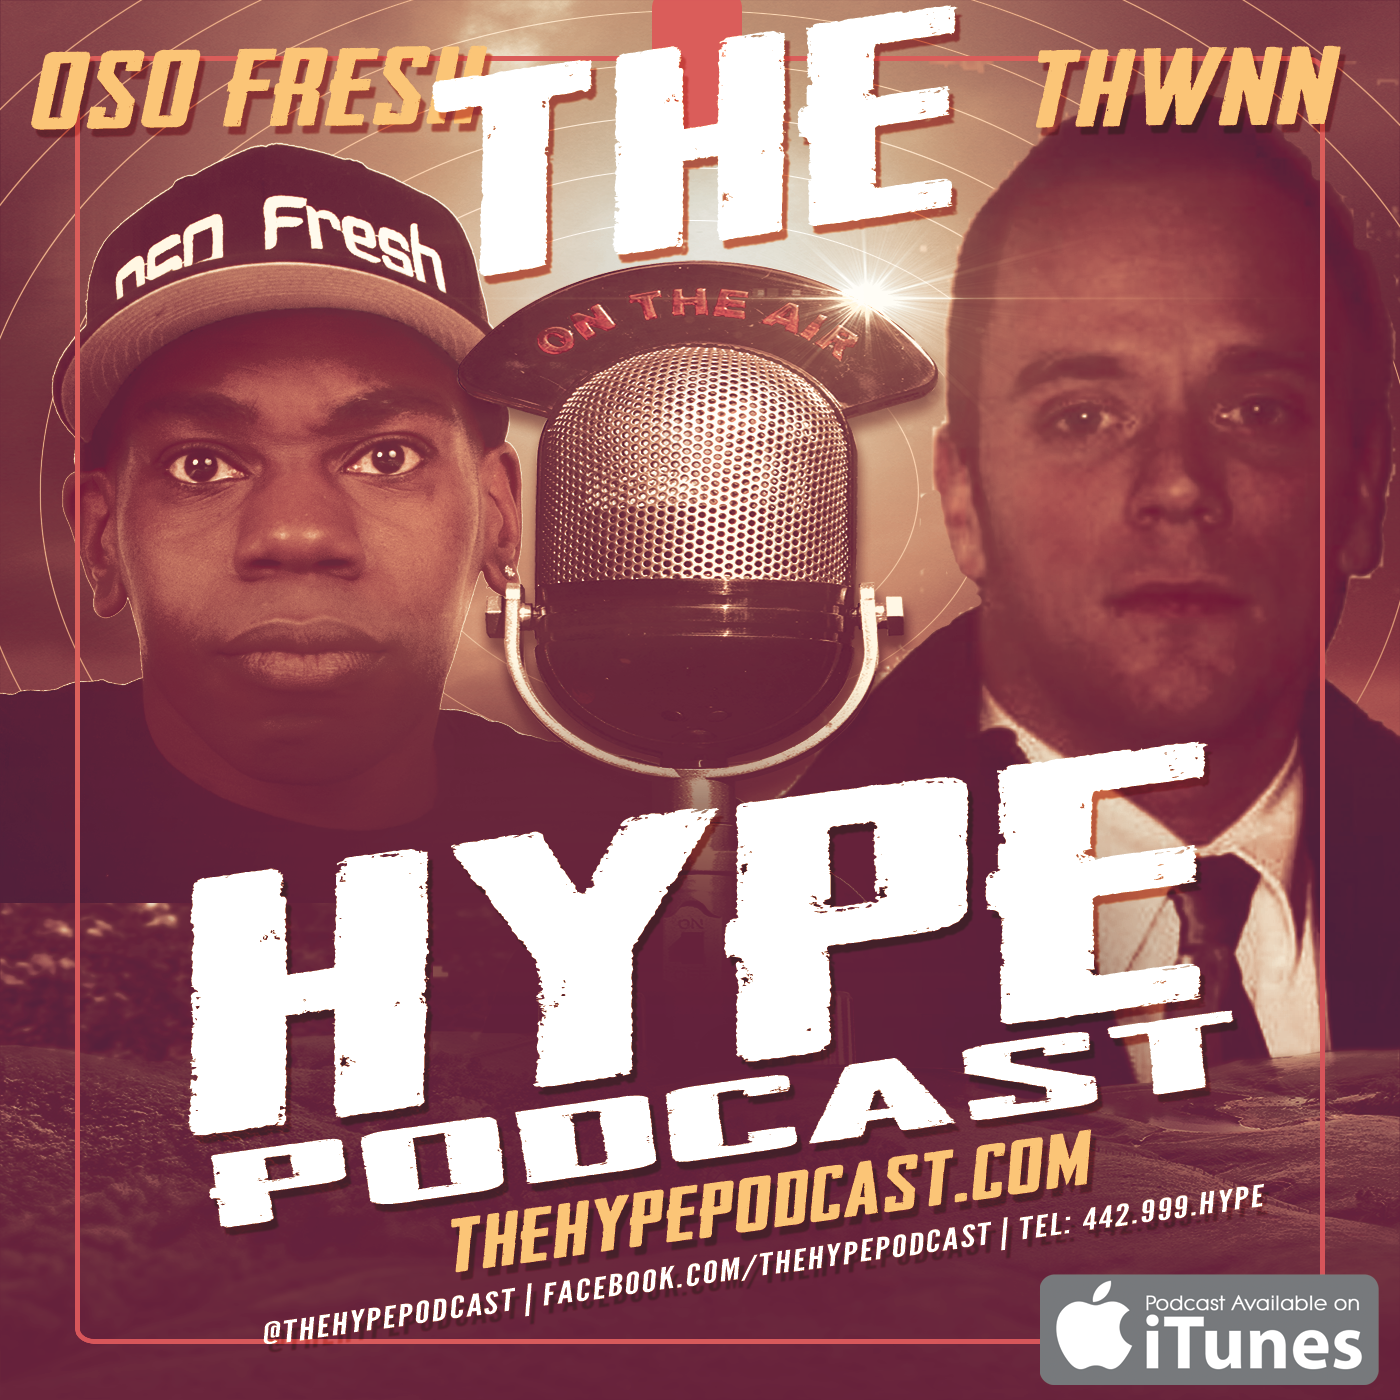 Artwork for The Hype Podcast episode 167